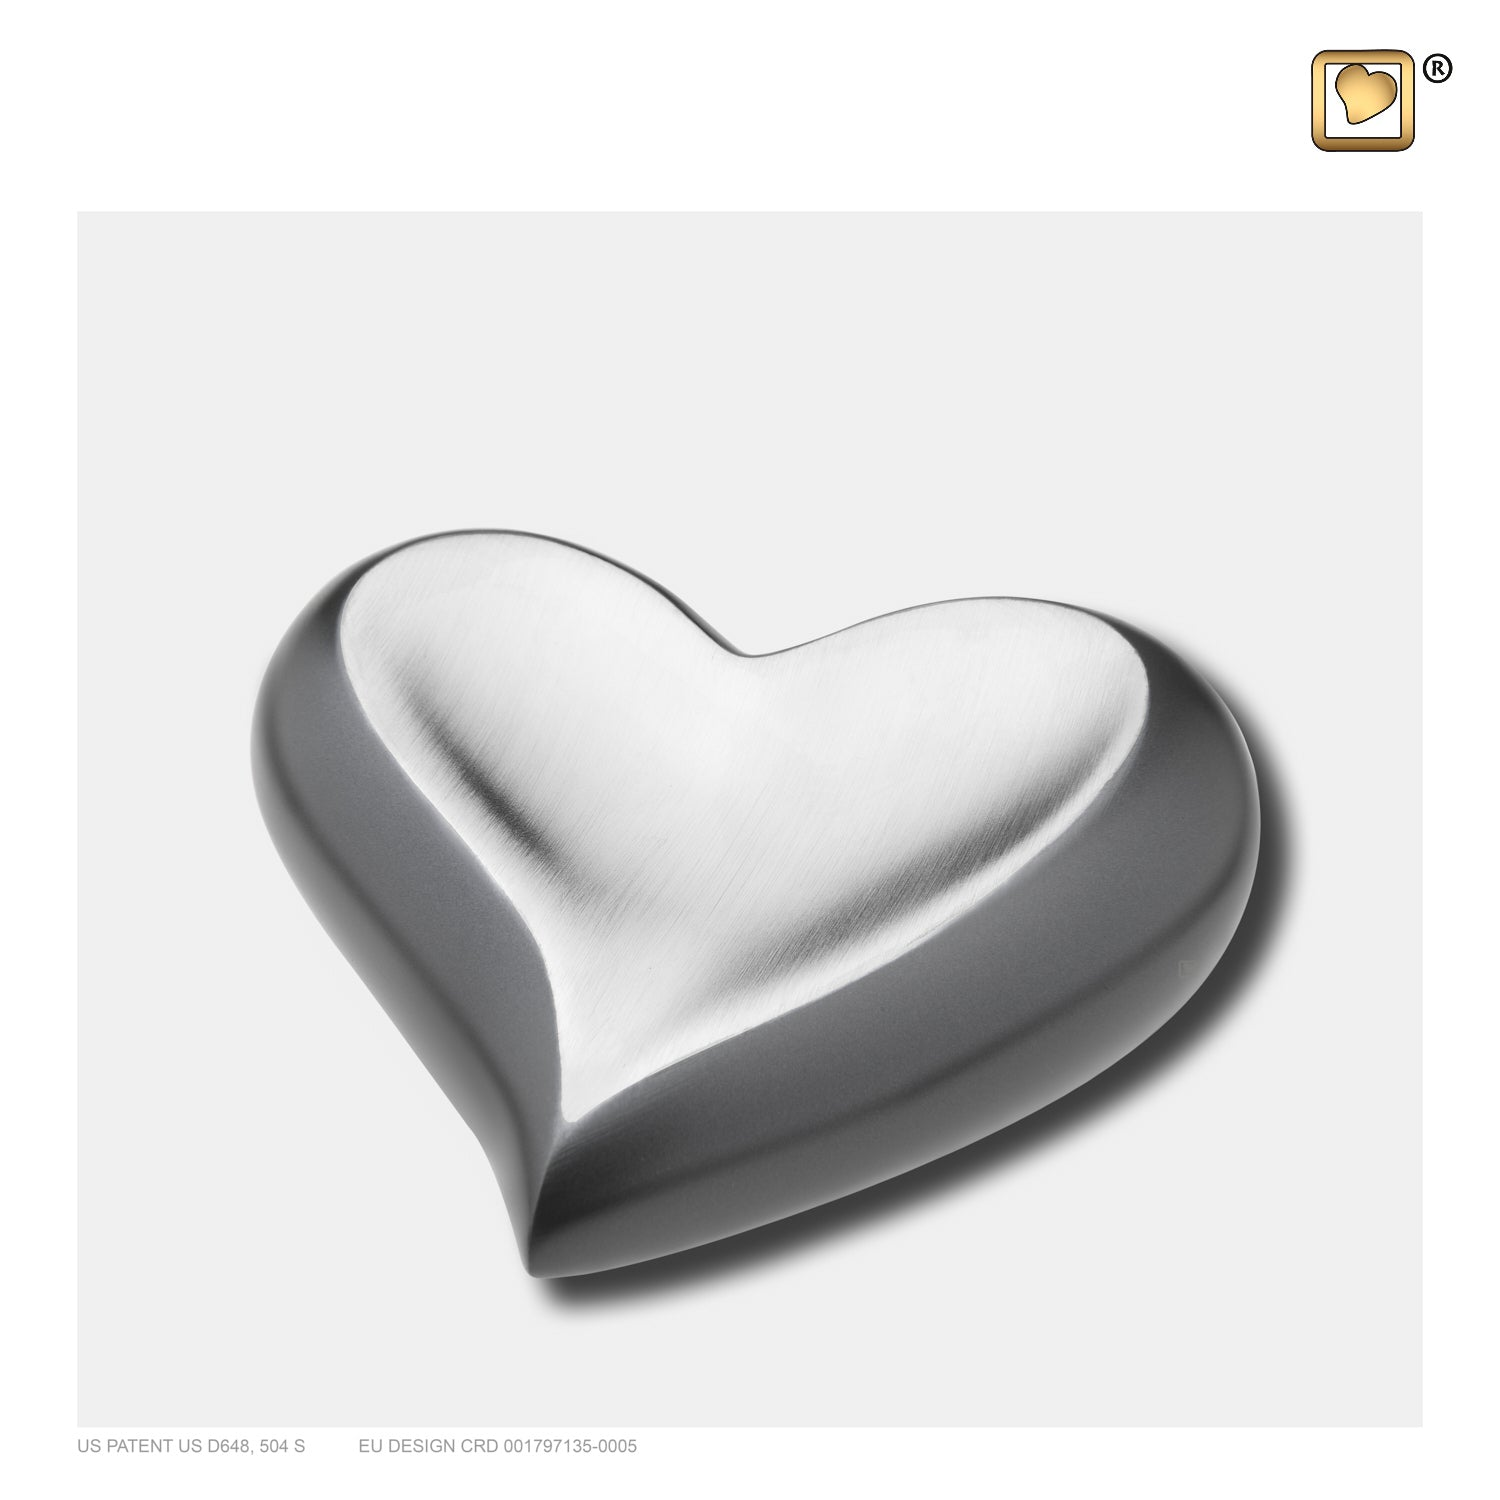 K612 HEART SLATE PEWTER™